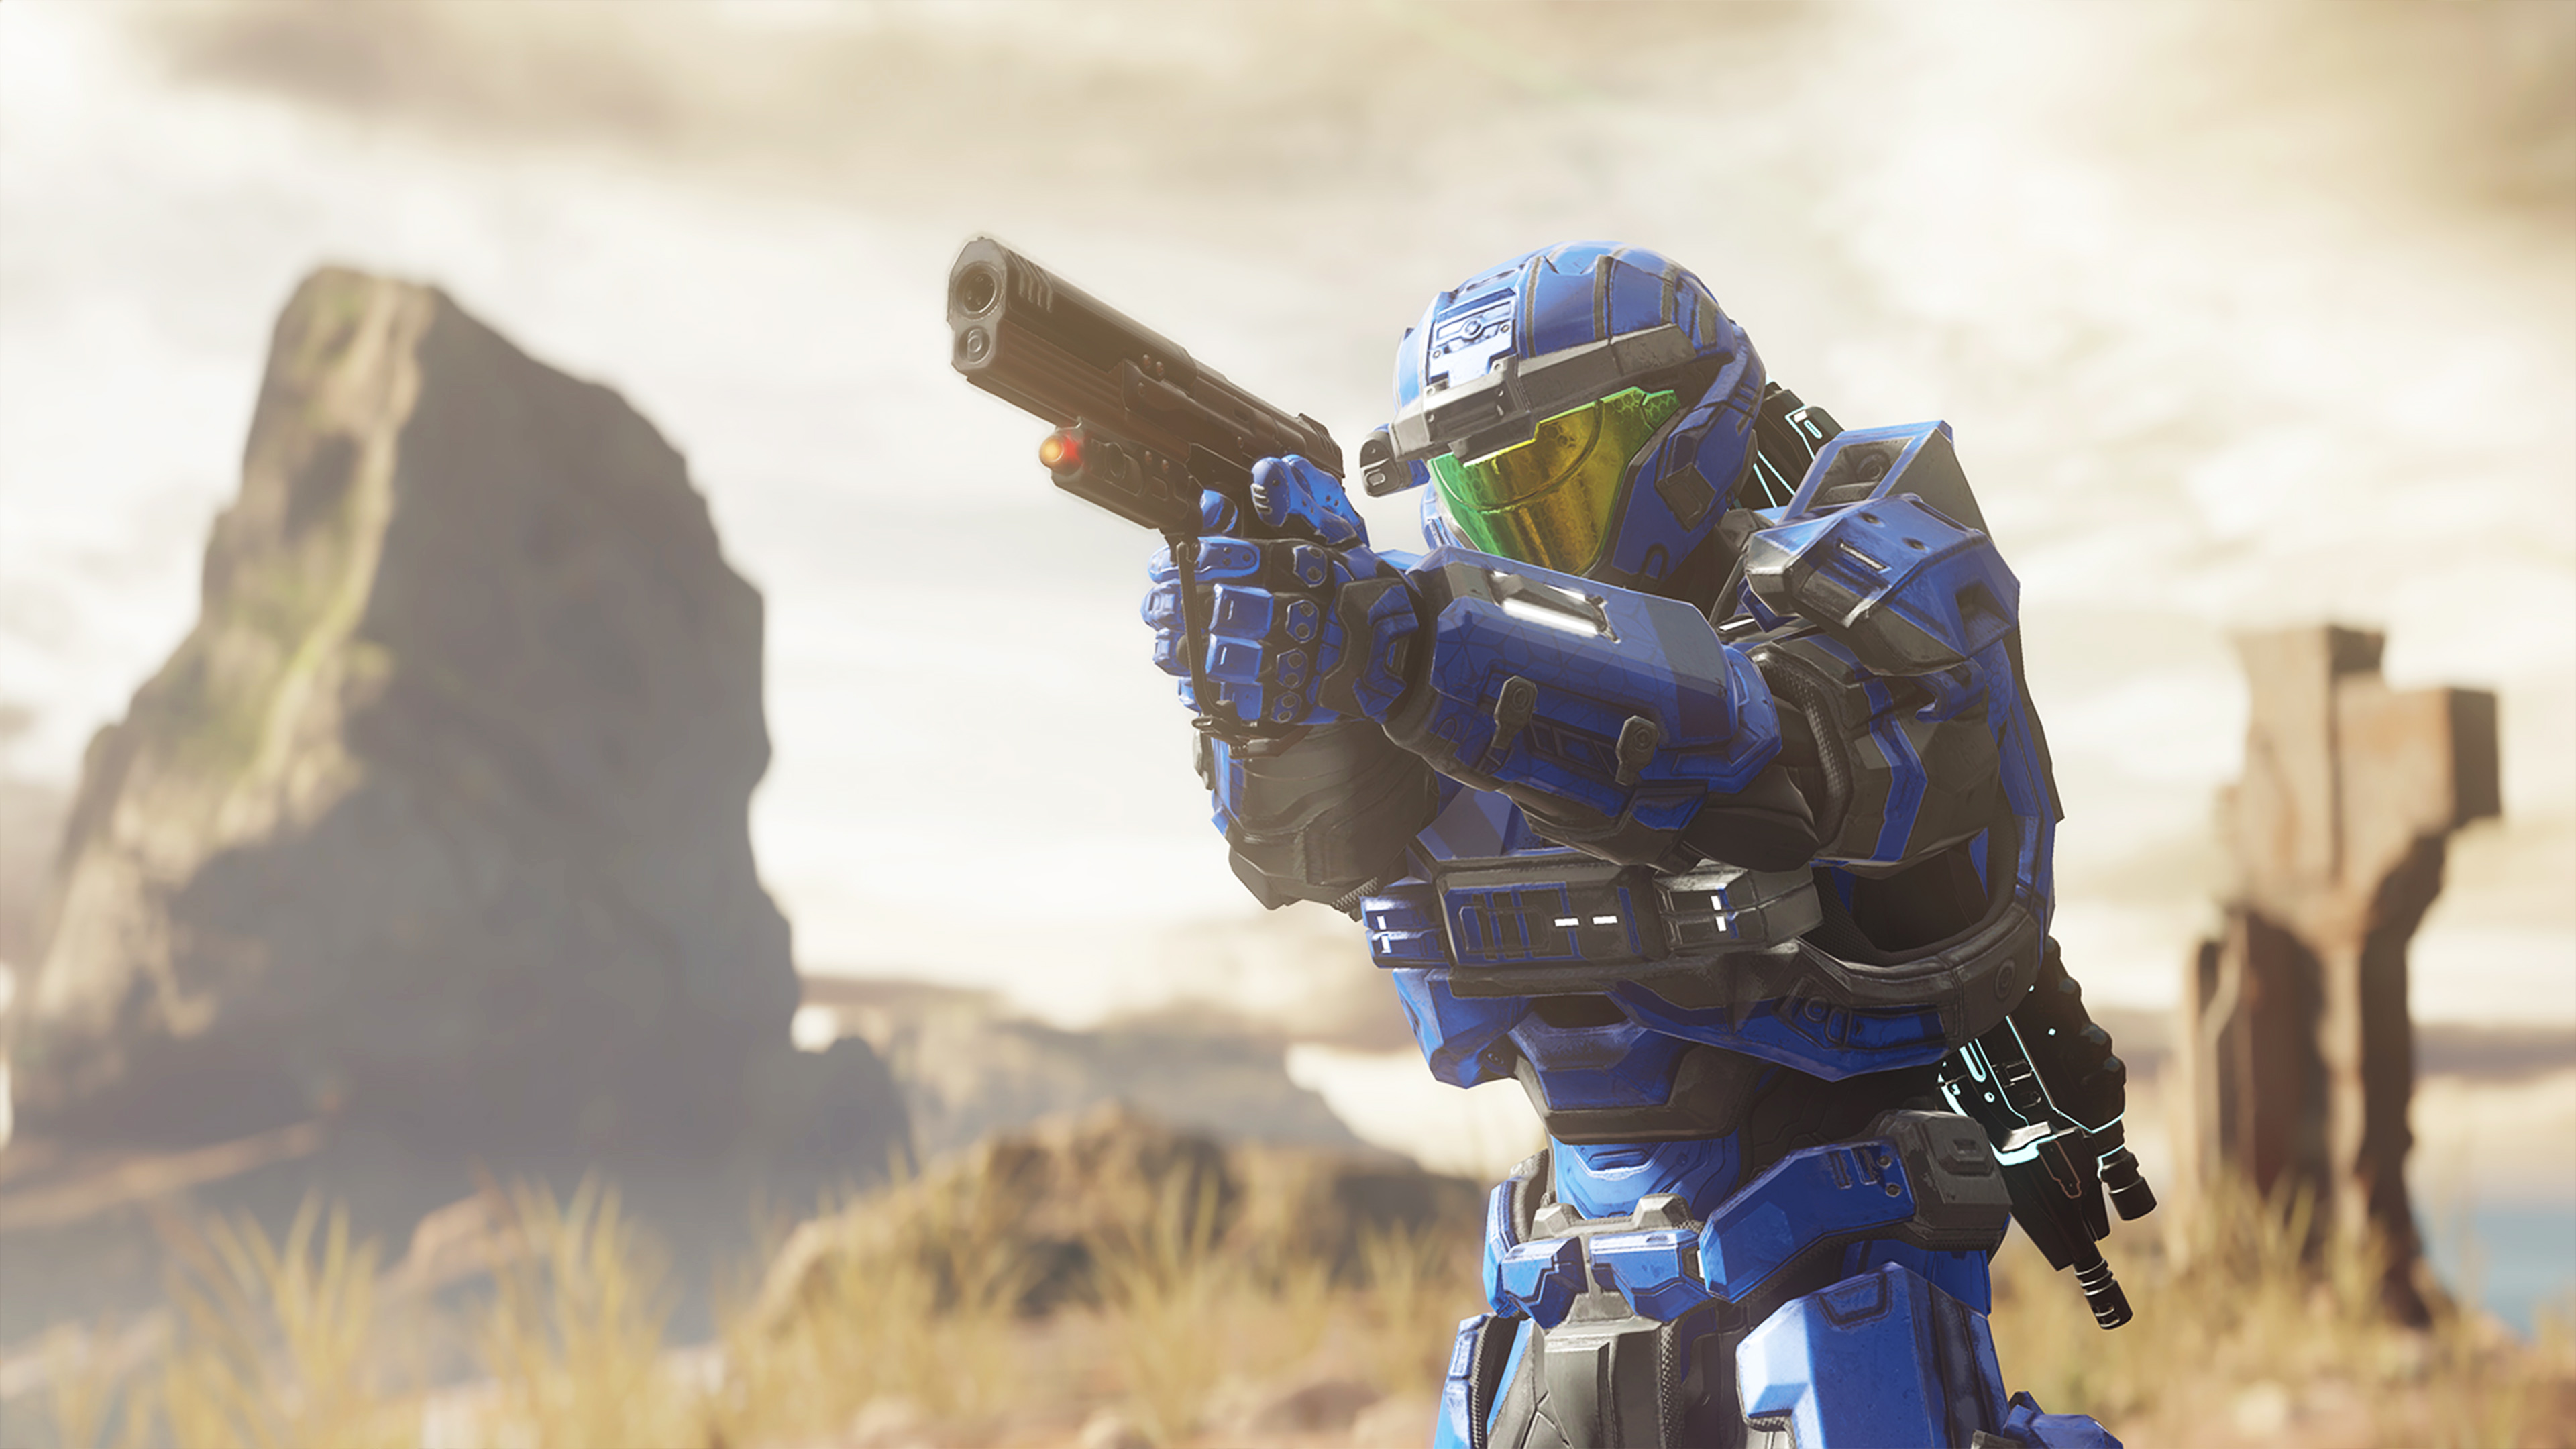 tmp_23462-Halo-5-Guardians-Warzone-Assault-Temple-Point-and-Shoot1567112409